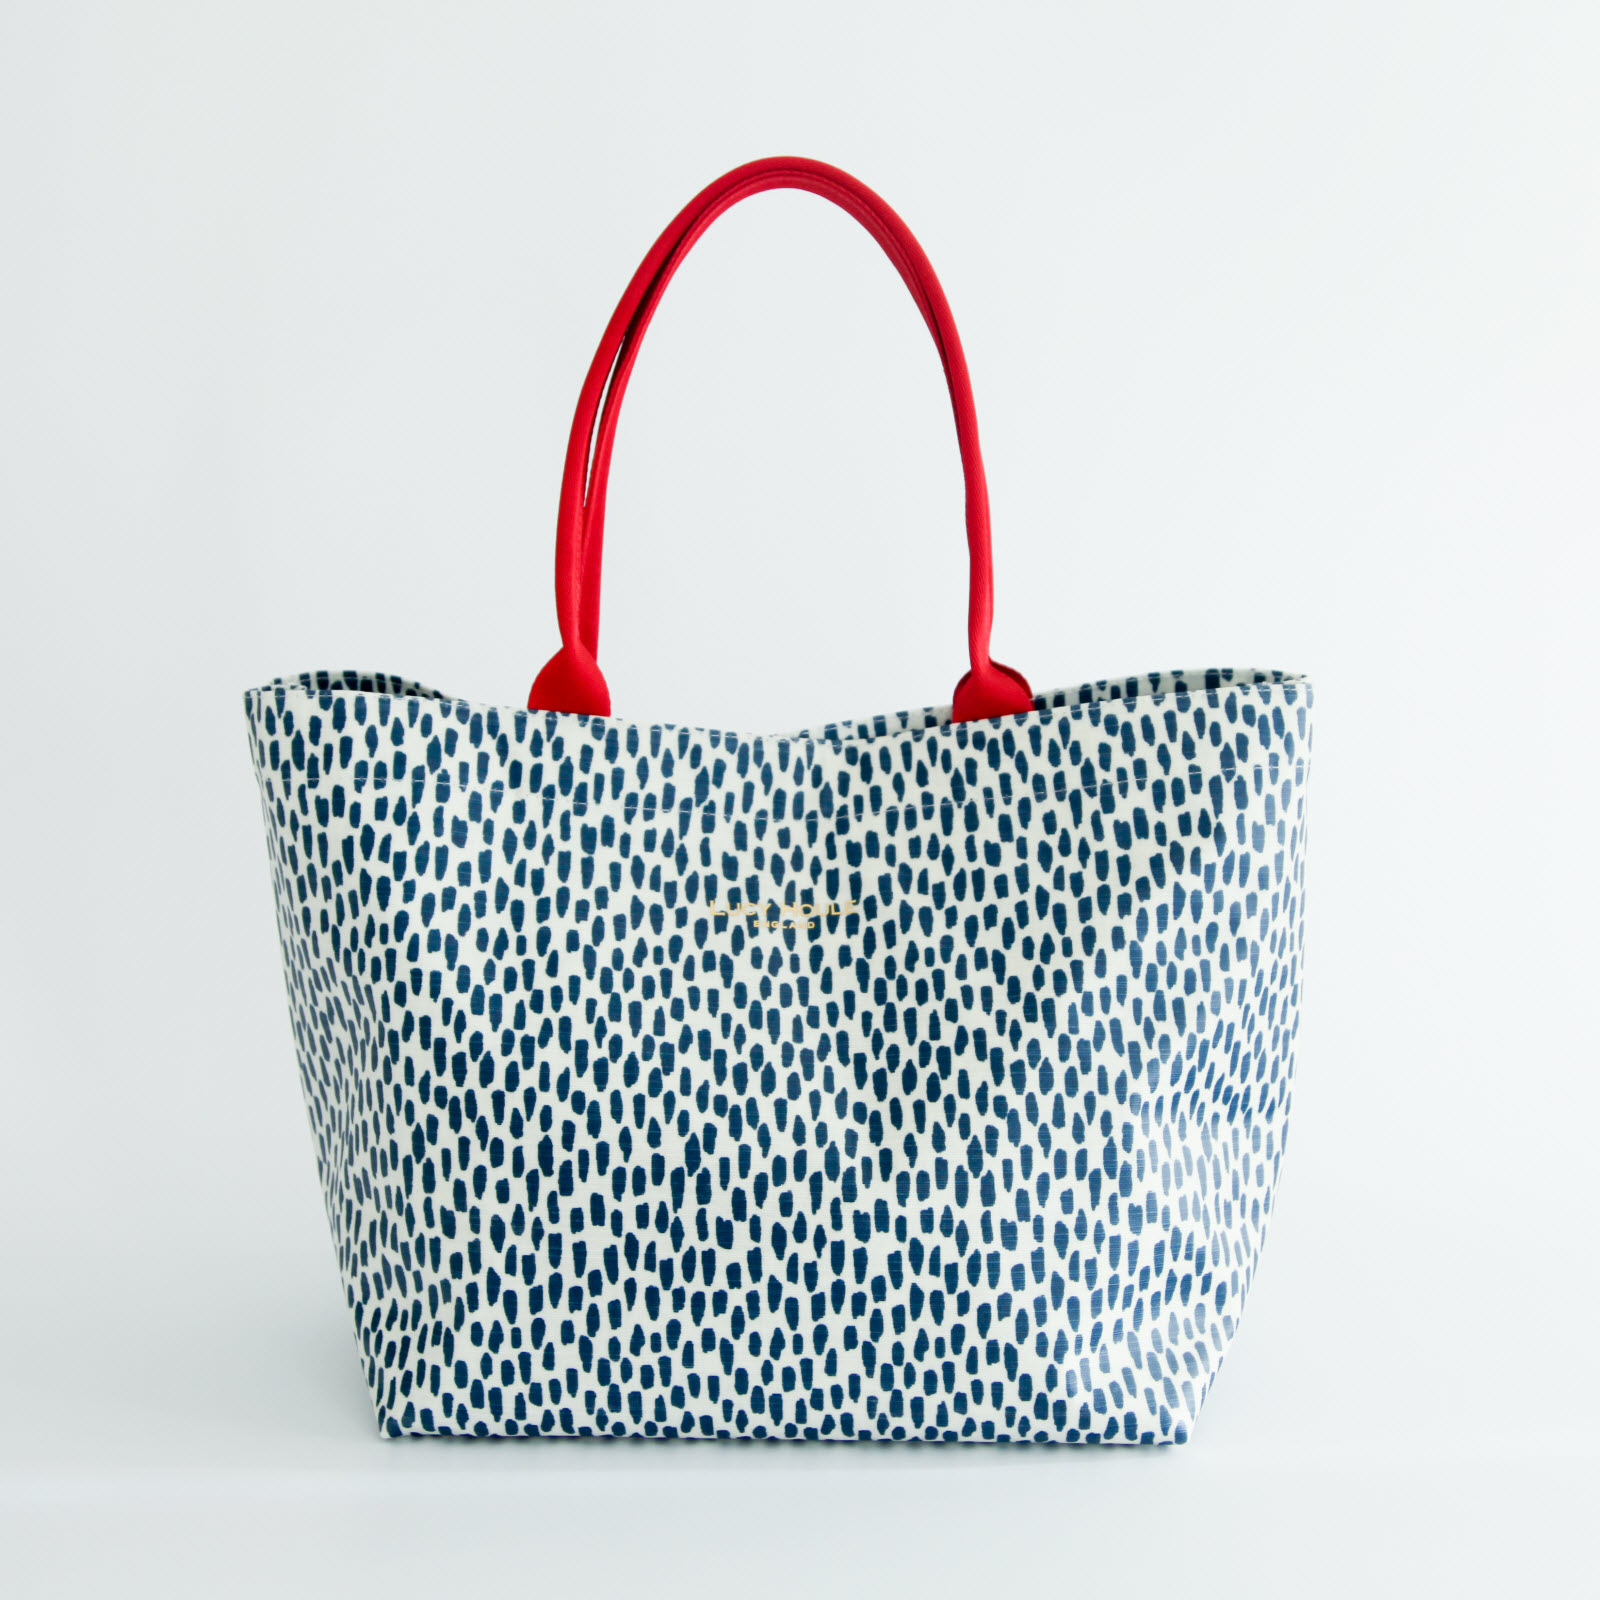 Navy Cobblestone Medium Tote Bag with Red Handles